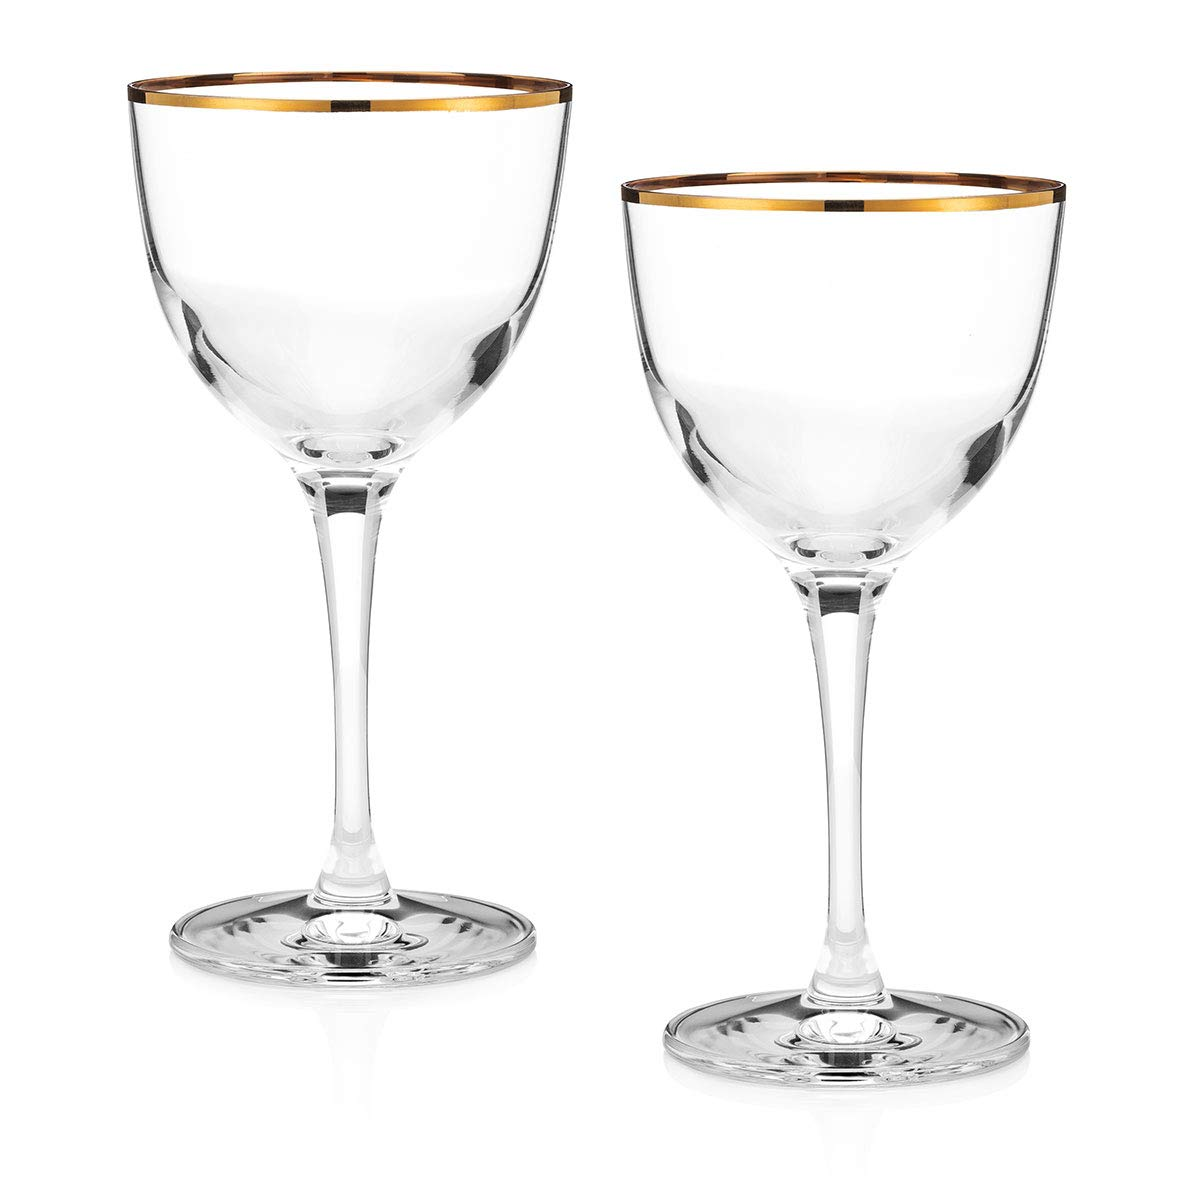 Gold-Rim''Nick and Nora'' Crystal Cocktail Glasses (Limited Edition Set of 2)